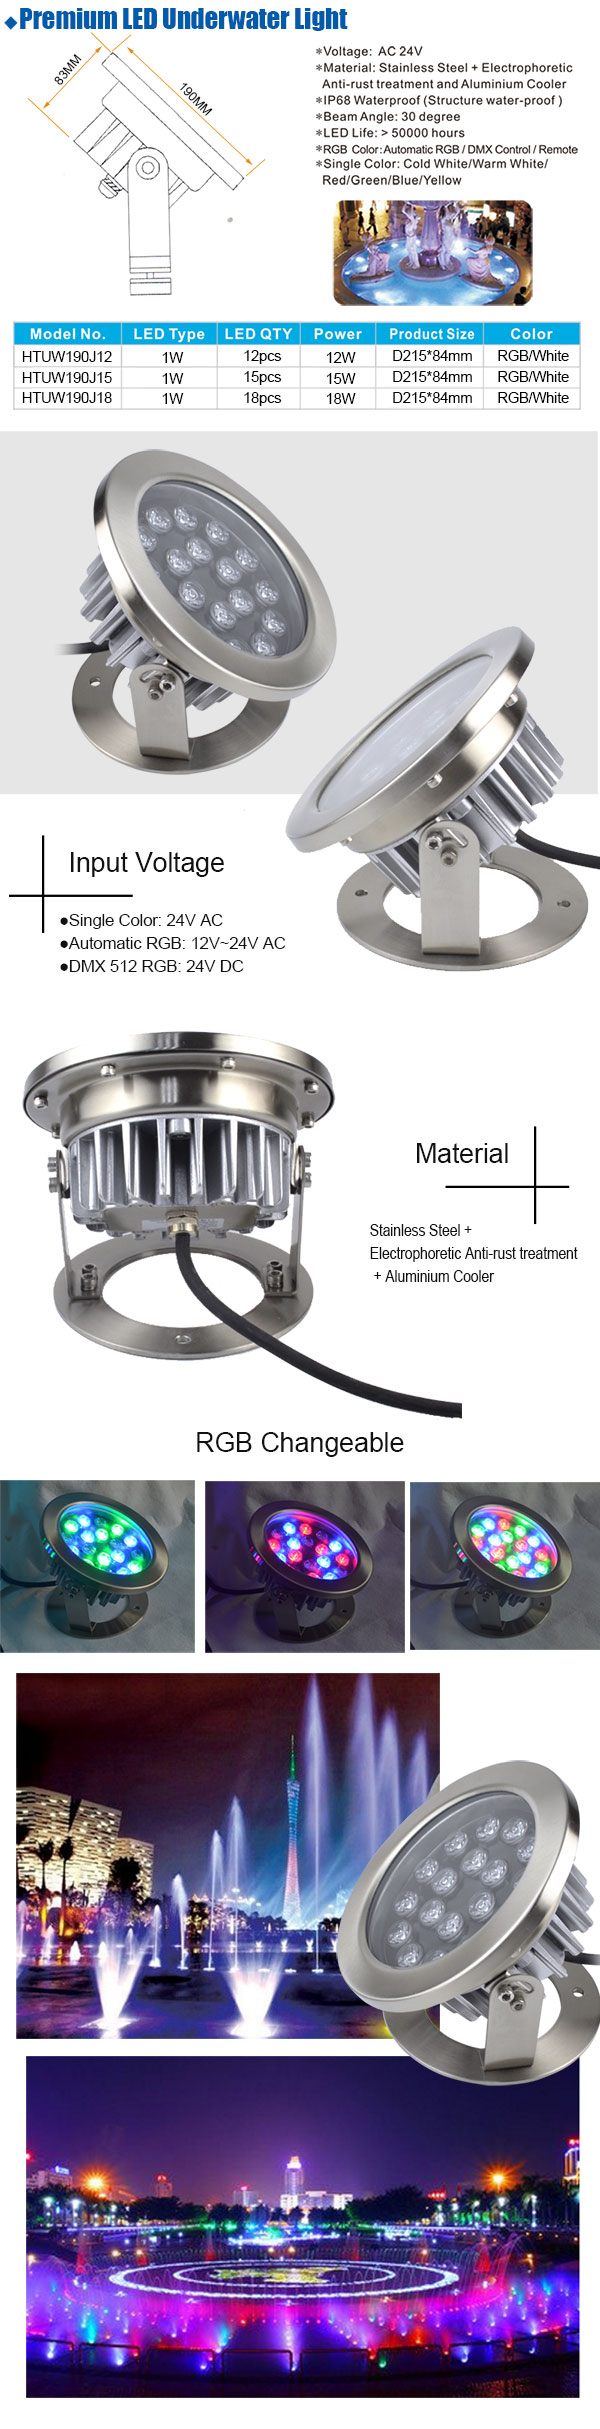 Premium 15W Stainless Steel High Power RGB led underwater light